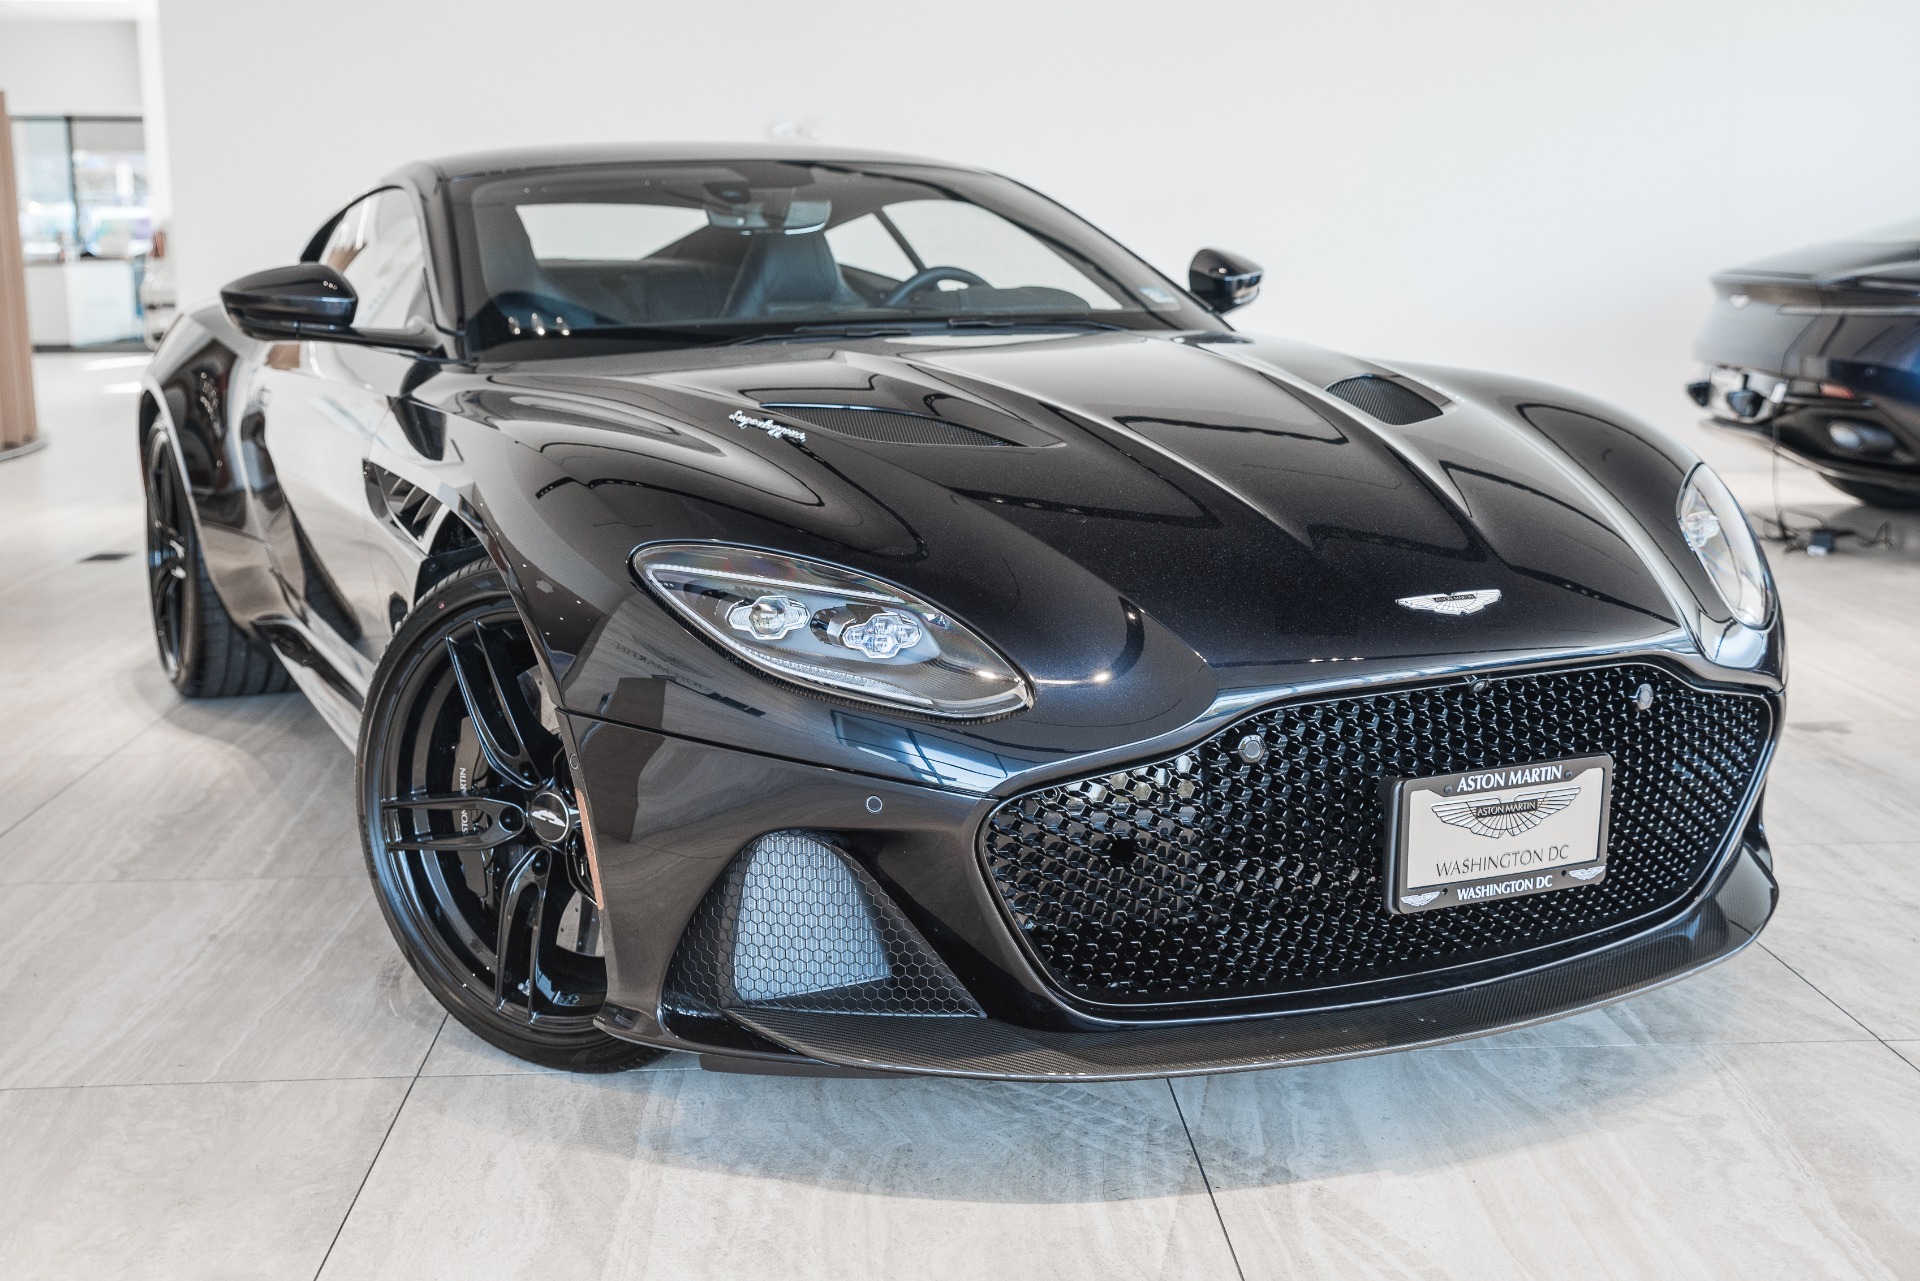 2020 Aston Martin Dbs Superleggera Stock 20nr01535 For Sale Near Vienna Va Va Aston Martin Dealer